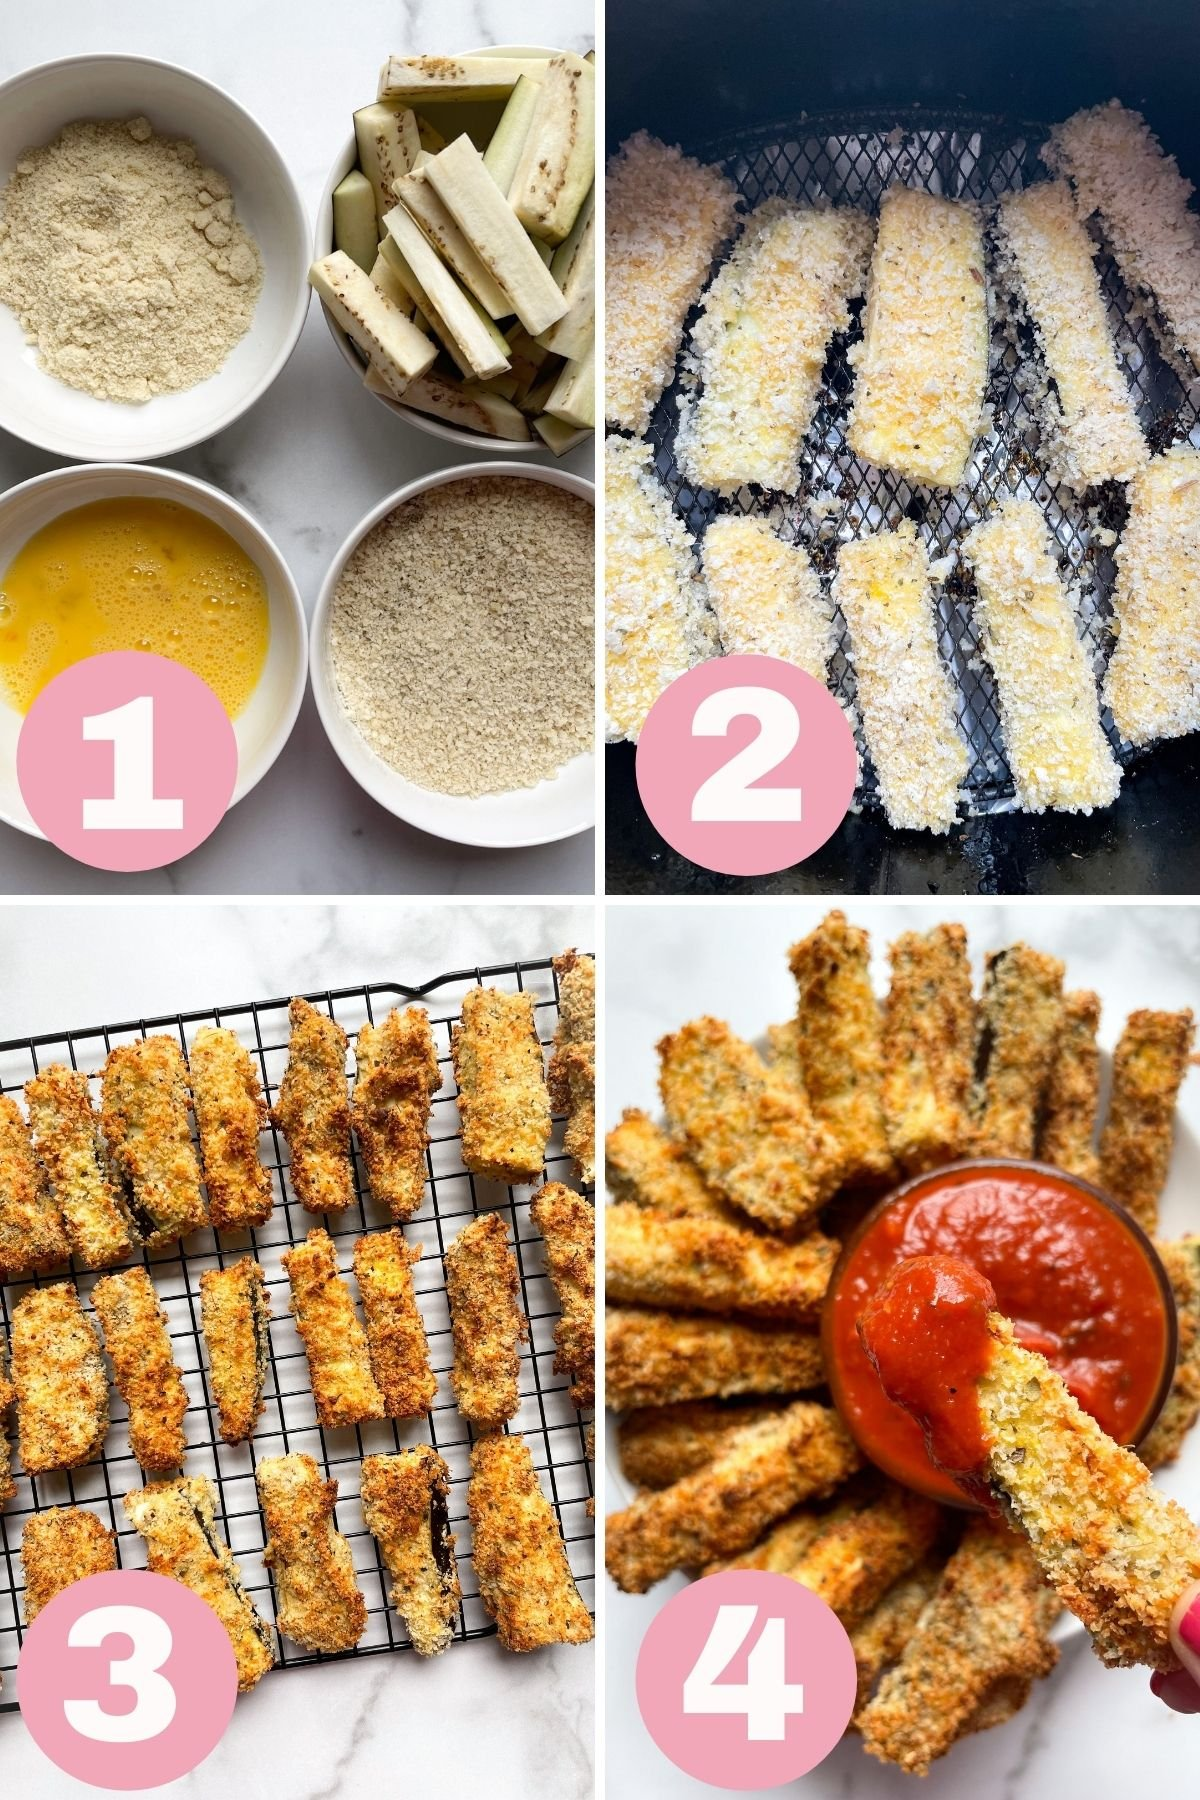 4 step photo collage how to make eggplant fries in the air fryer